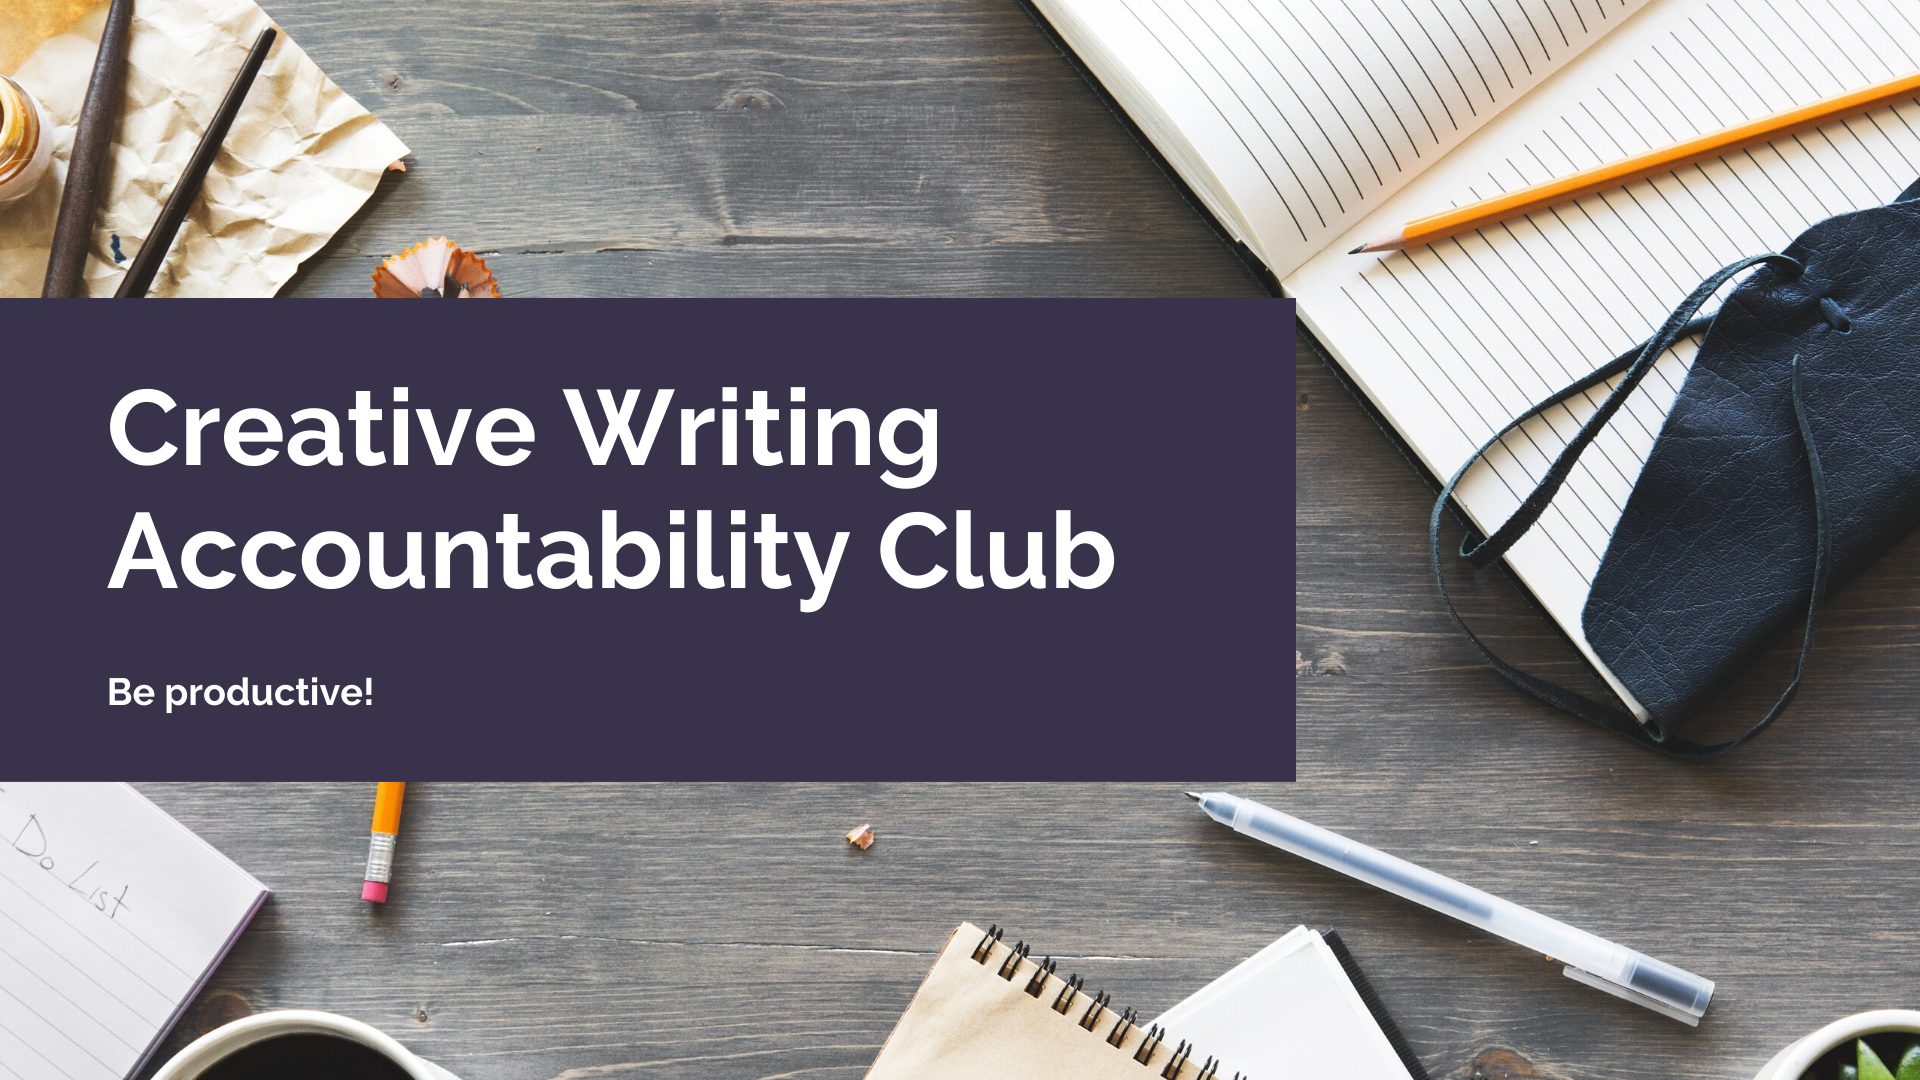 Canva graphic of a table with notebooks and an overlayed text message saying creative writing accountability club